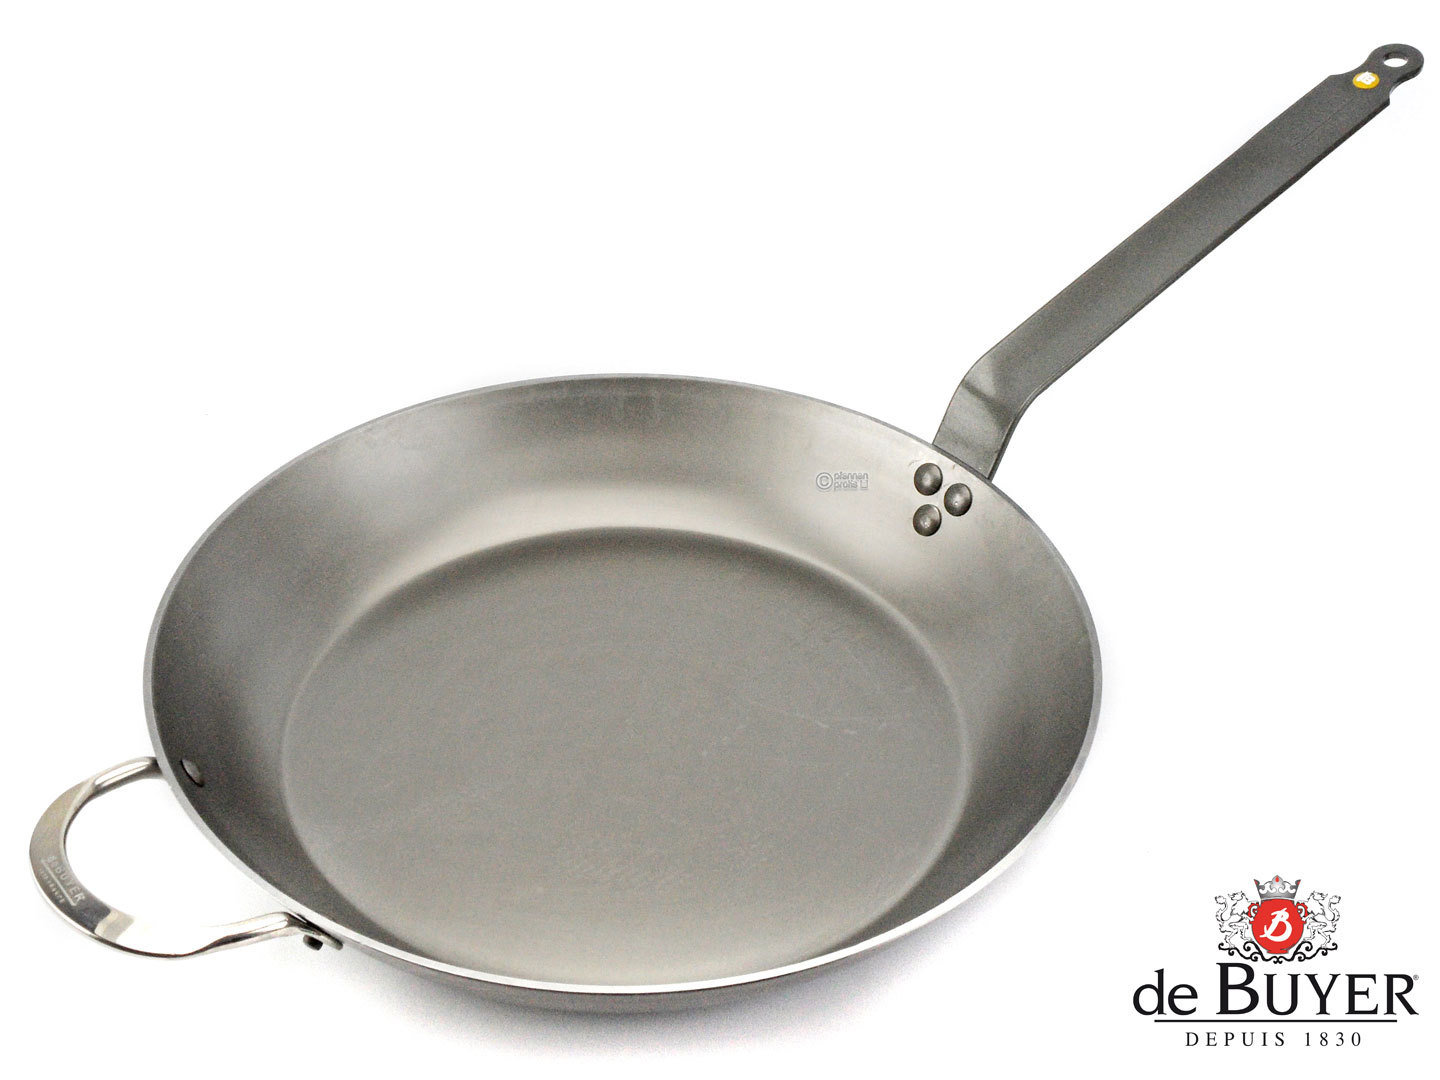 DE BUYER iron pan MINERAL B ELEMENT 36 cm frypan